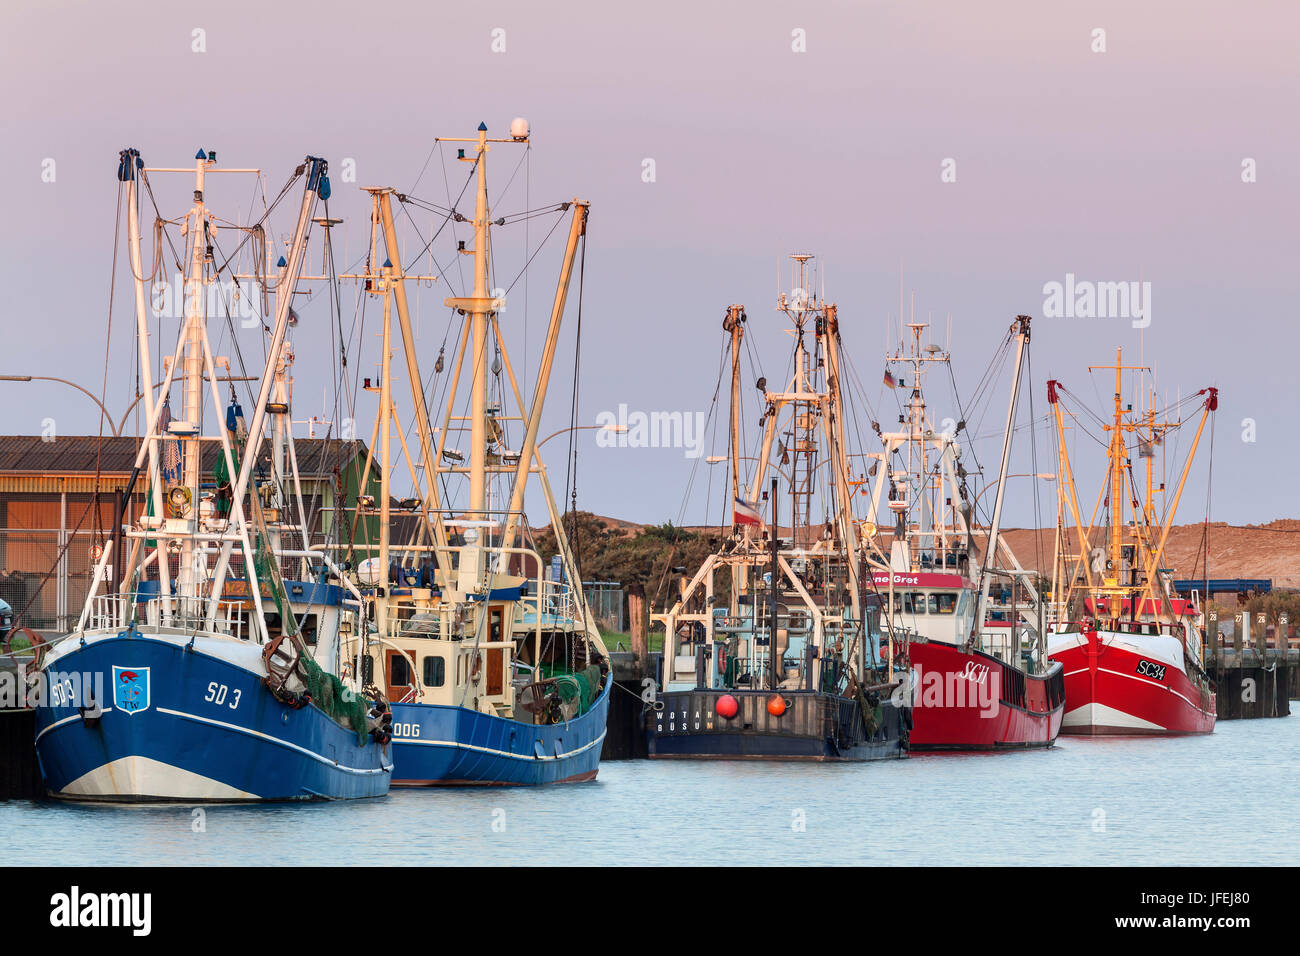 Crab cutters in the harbour, Büsum, Ditmarsh, Schleswig - Holstein, North Germany, Germany - Stock Image